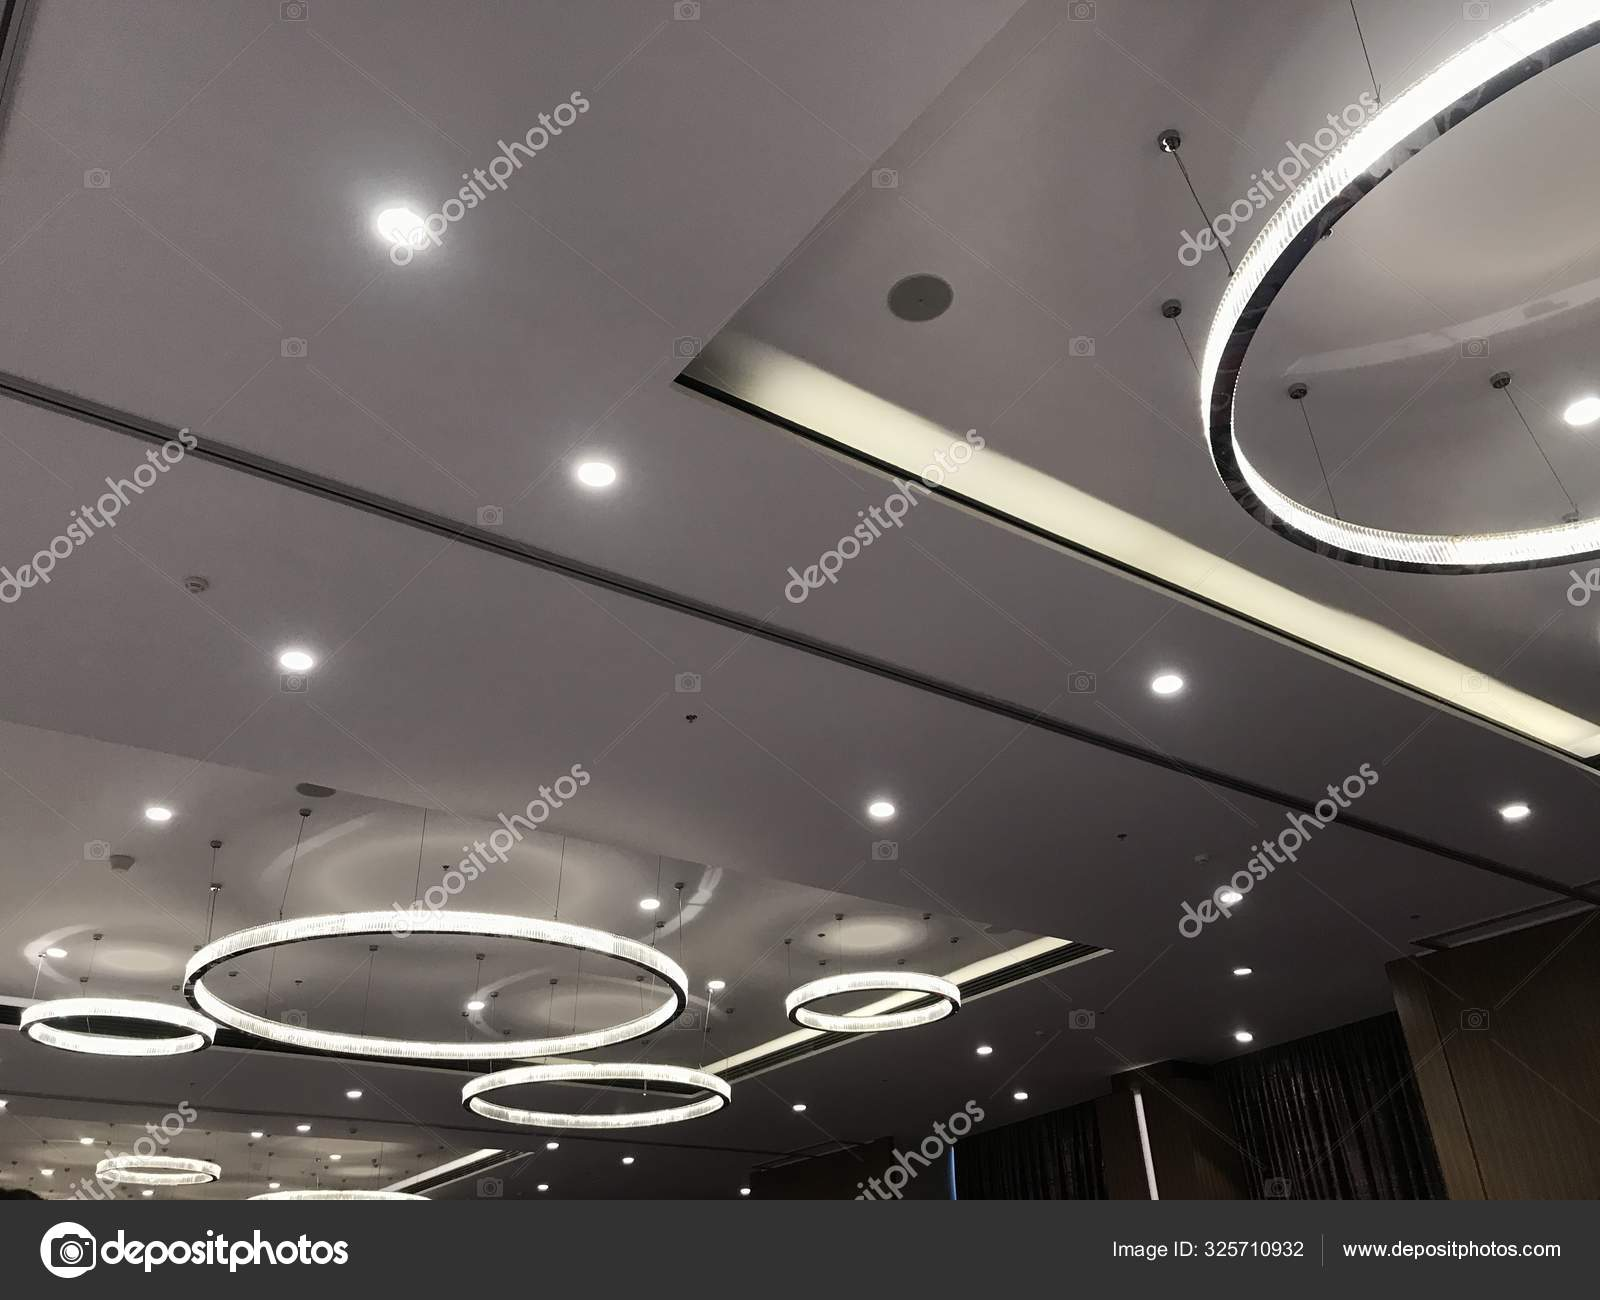 A Decorative Suspended Gypsum False Ceiling Interiors With Circle Shaped Led Lighting For An Banquet Hall To Carryout An Grand Party Stock Photo Image By C Murugeshgce Gmail Com 325710932